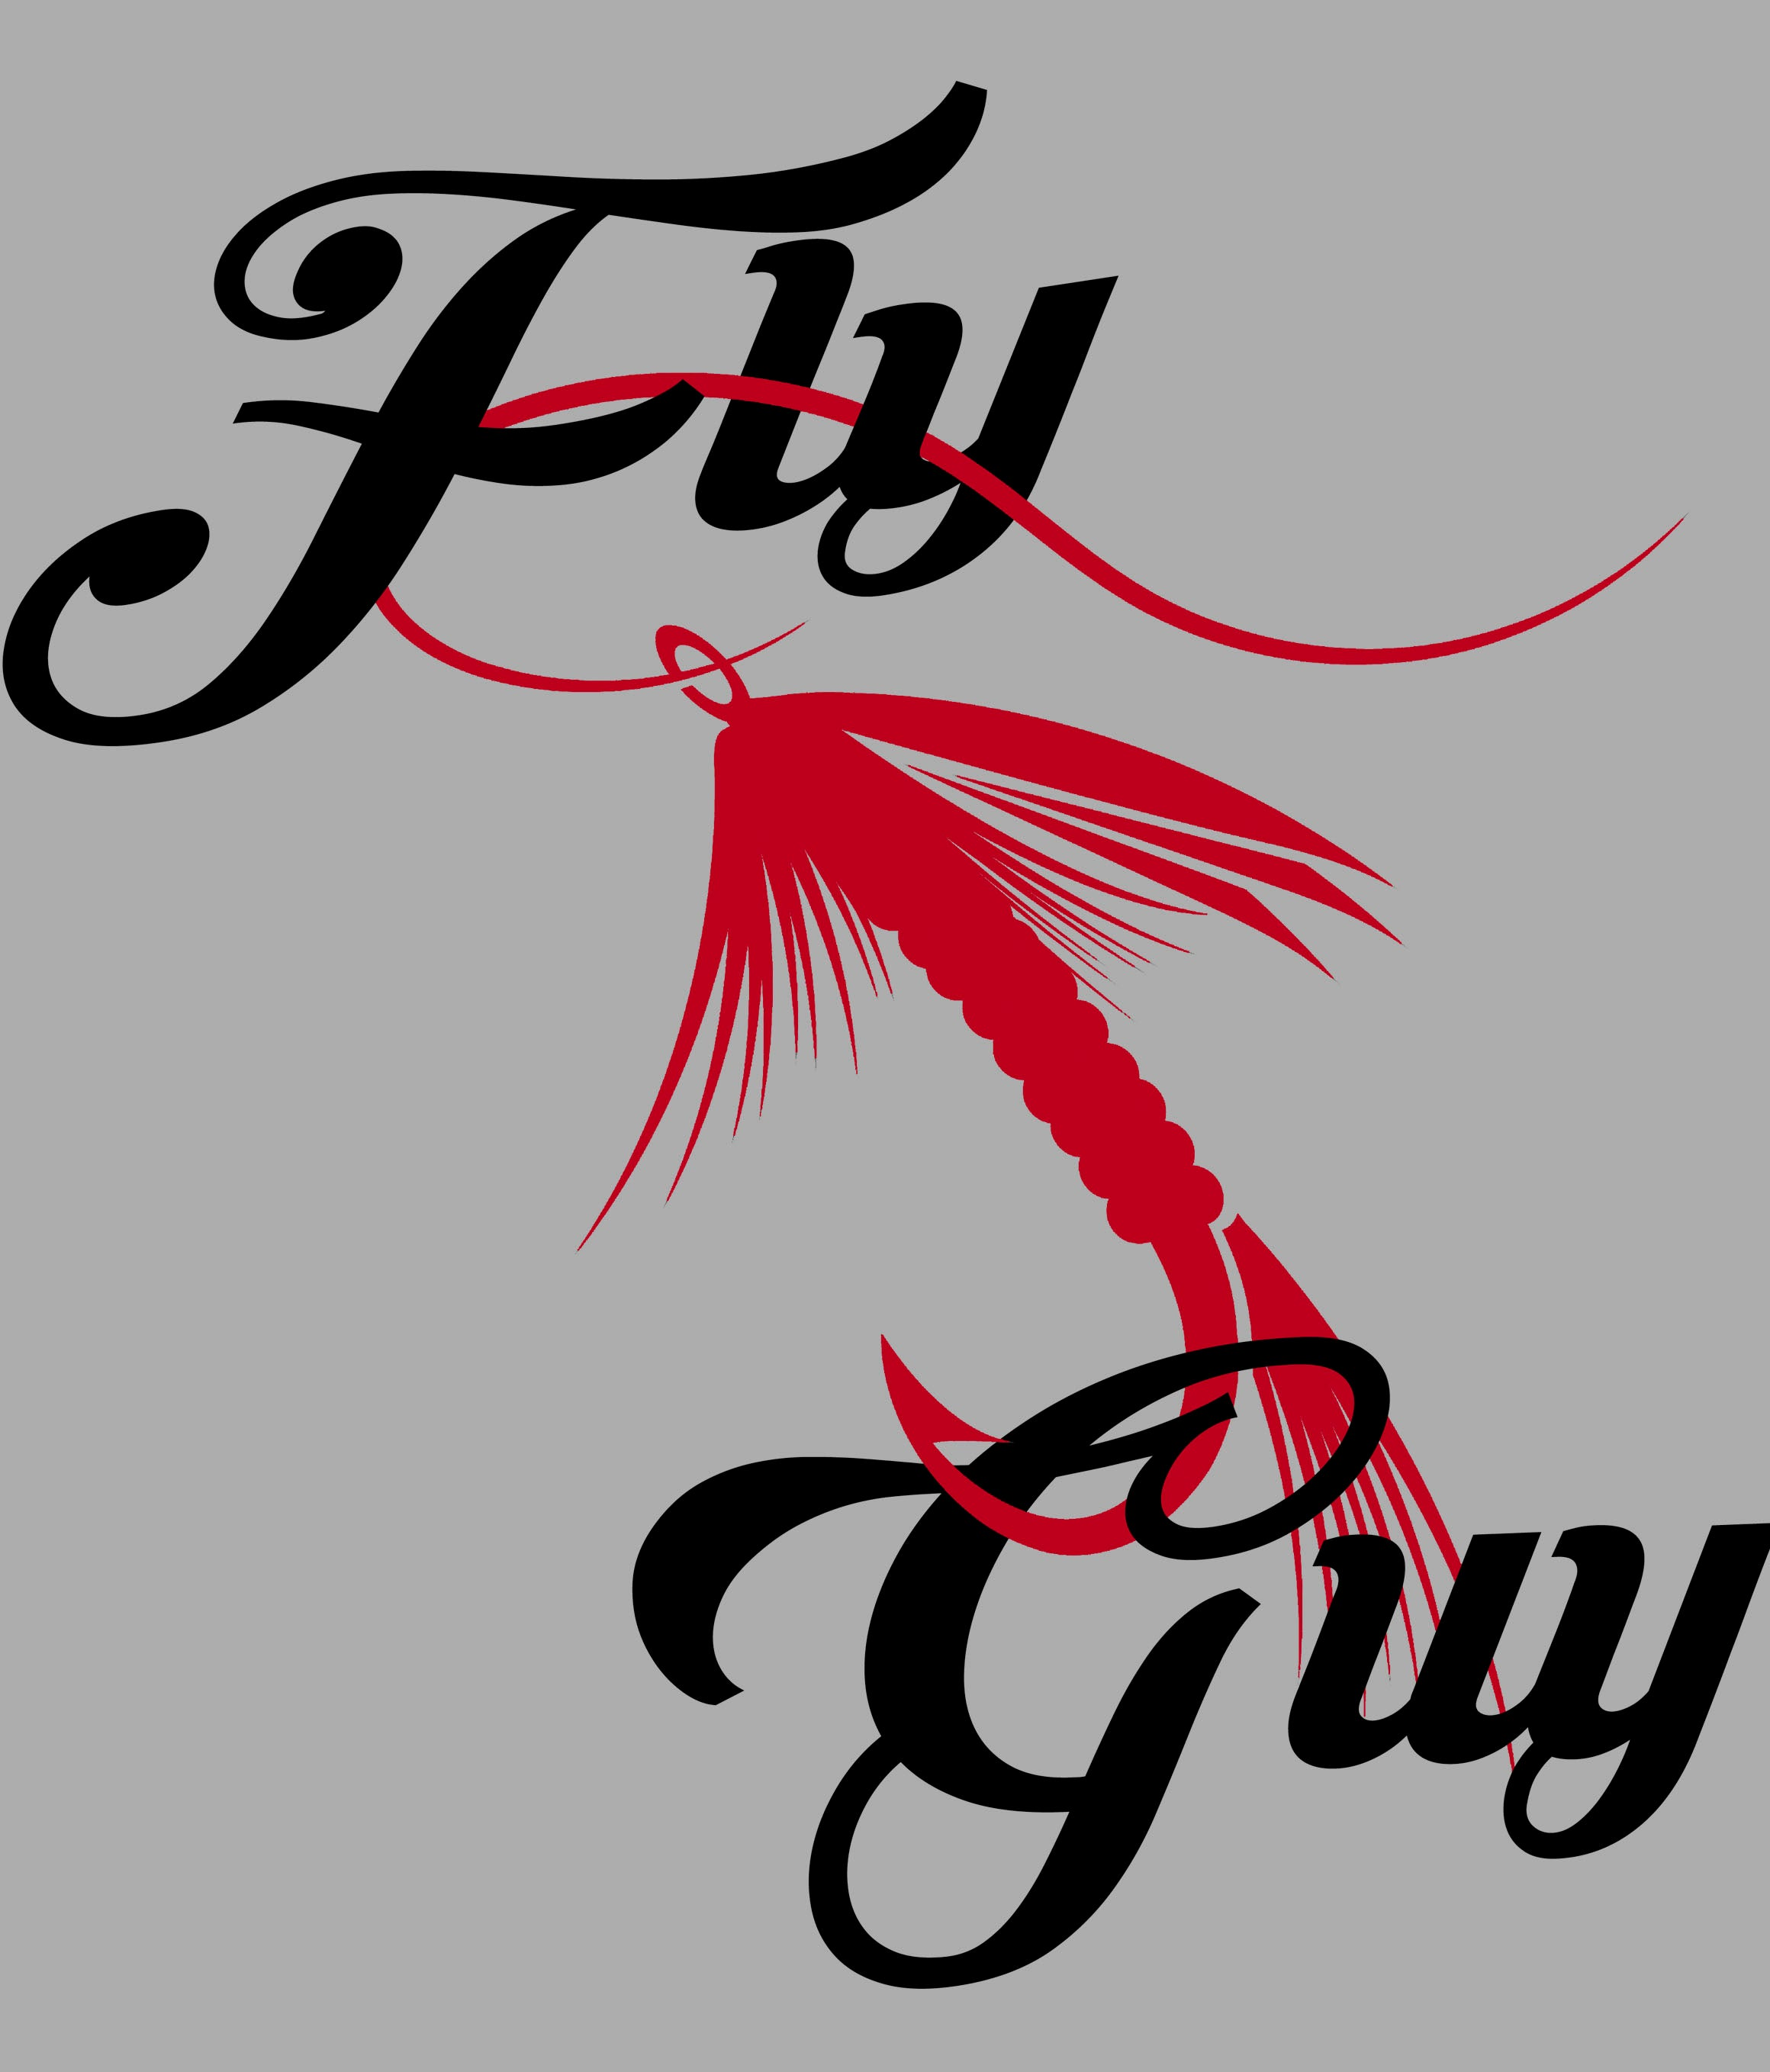 FLY GUY T-SHIRT DESIGN CLOSEUP